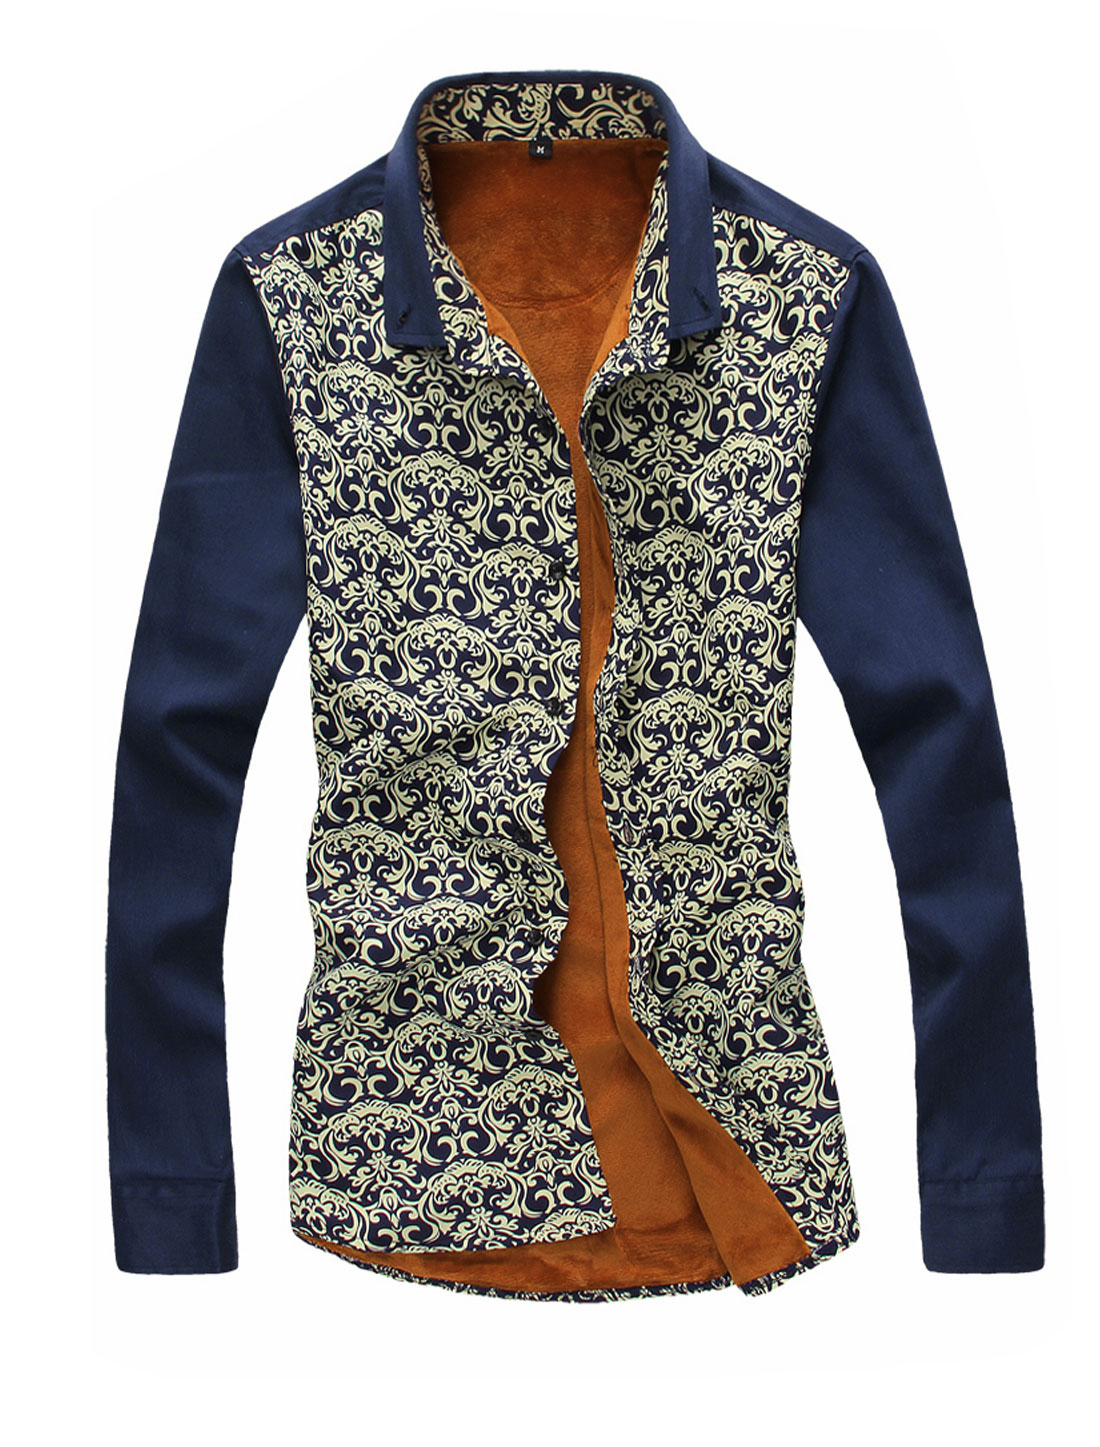 Men Point Collar Soft Lining Novelty Prints Casual Shirt Navy Blue M